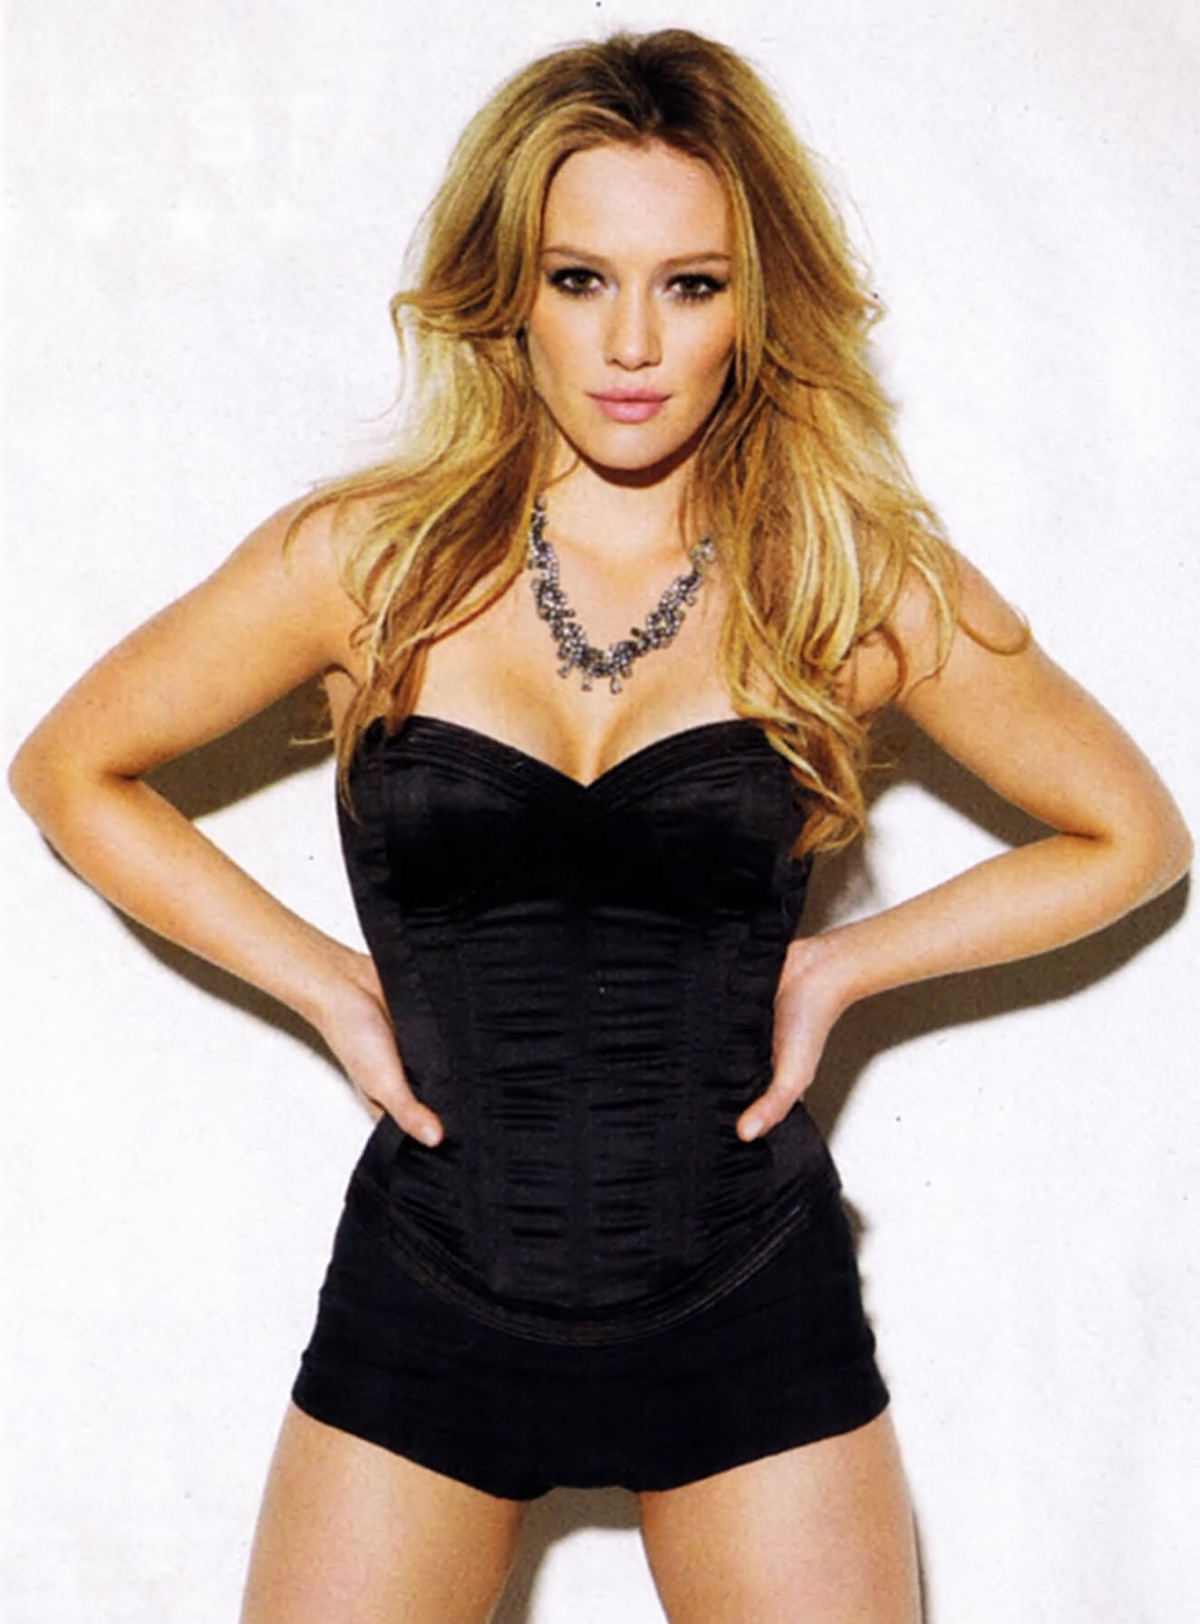 Hilary Duff Height Weight Age Bra Size Affairs Body Measurements